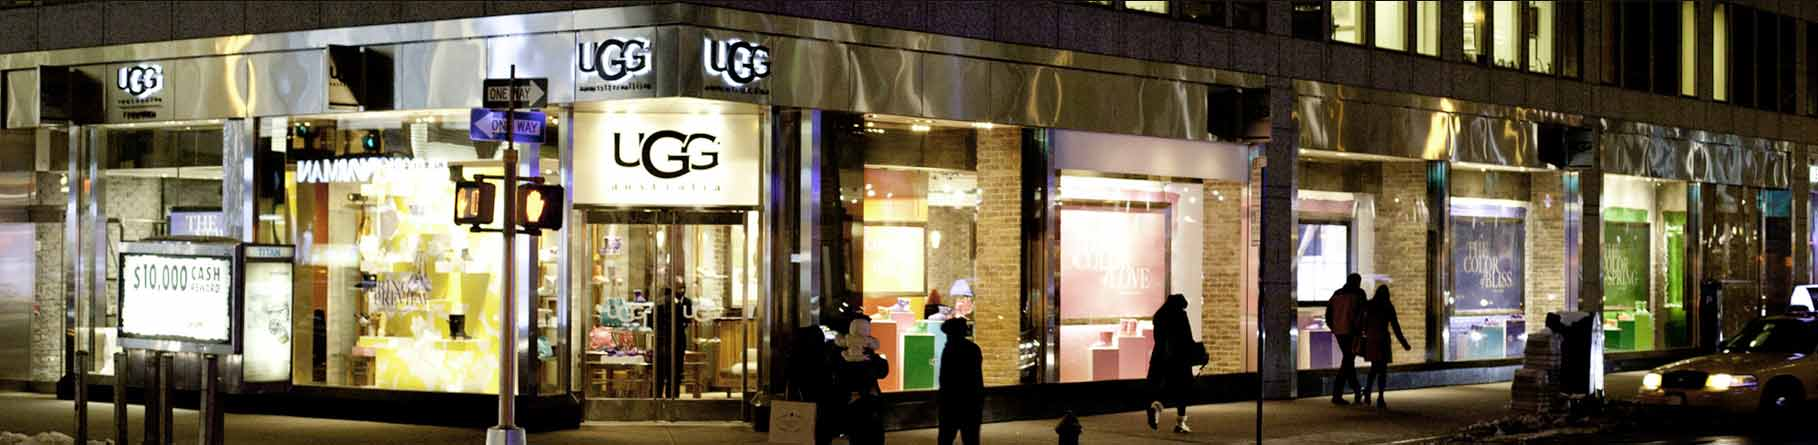 Ugg retail store on busy street corner